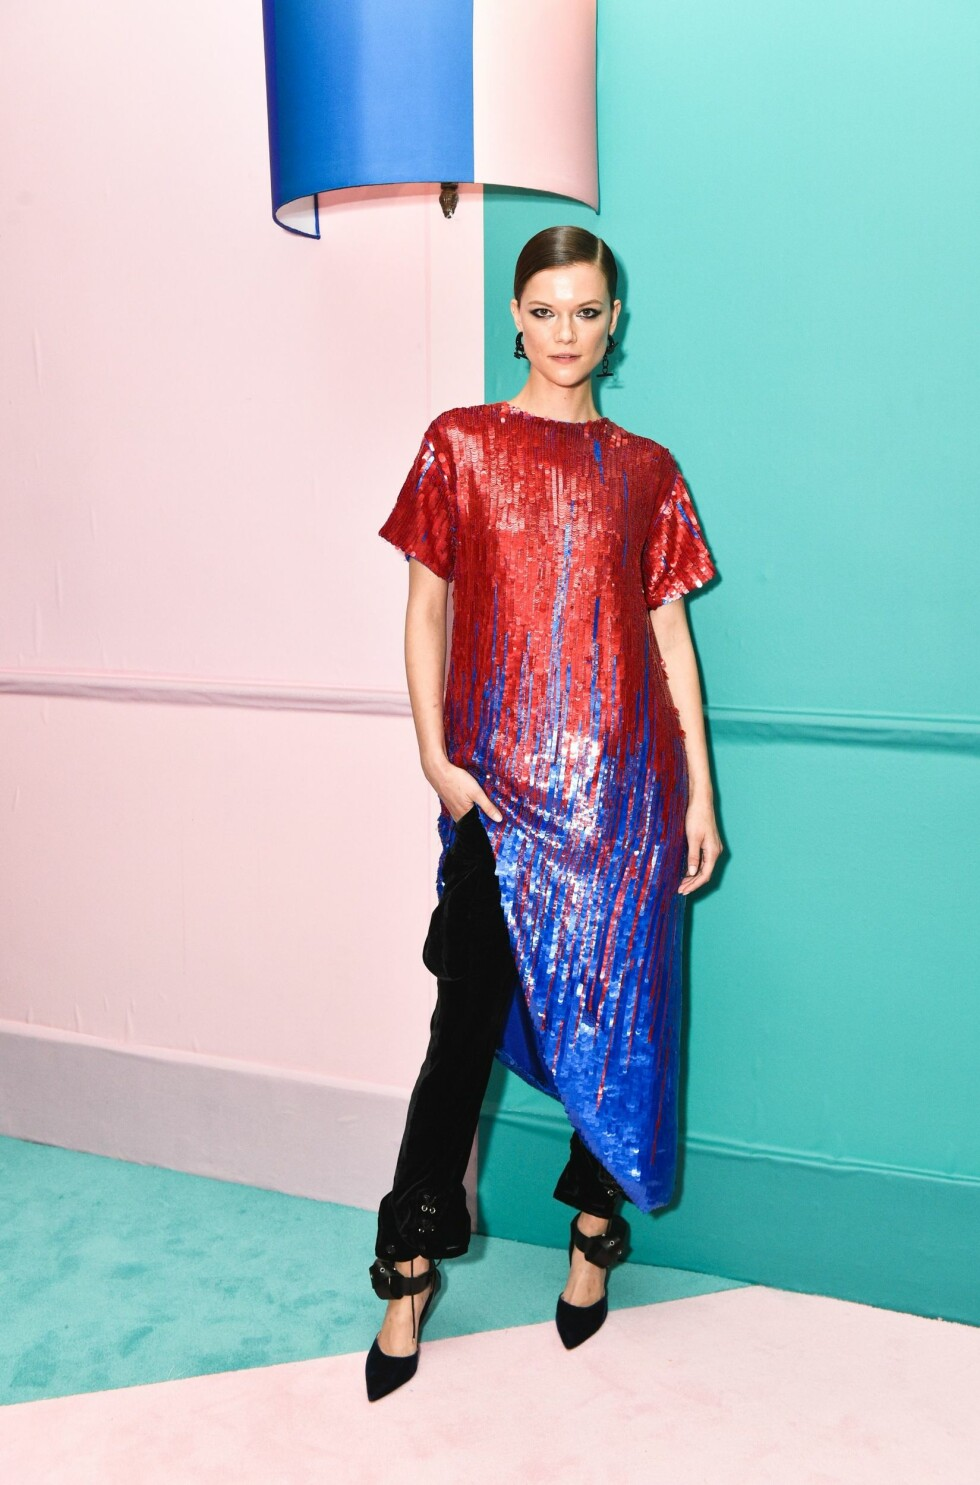 CFDA FASHION AWARDS: Kasia Struss Foto: Shutterstock